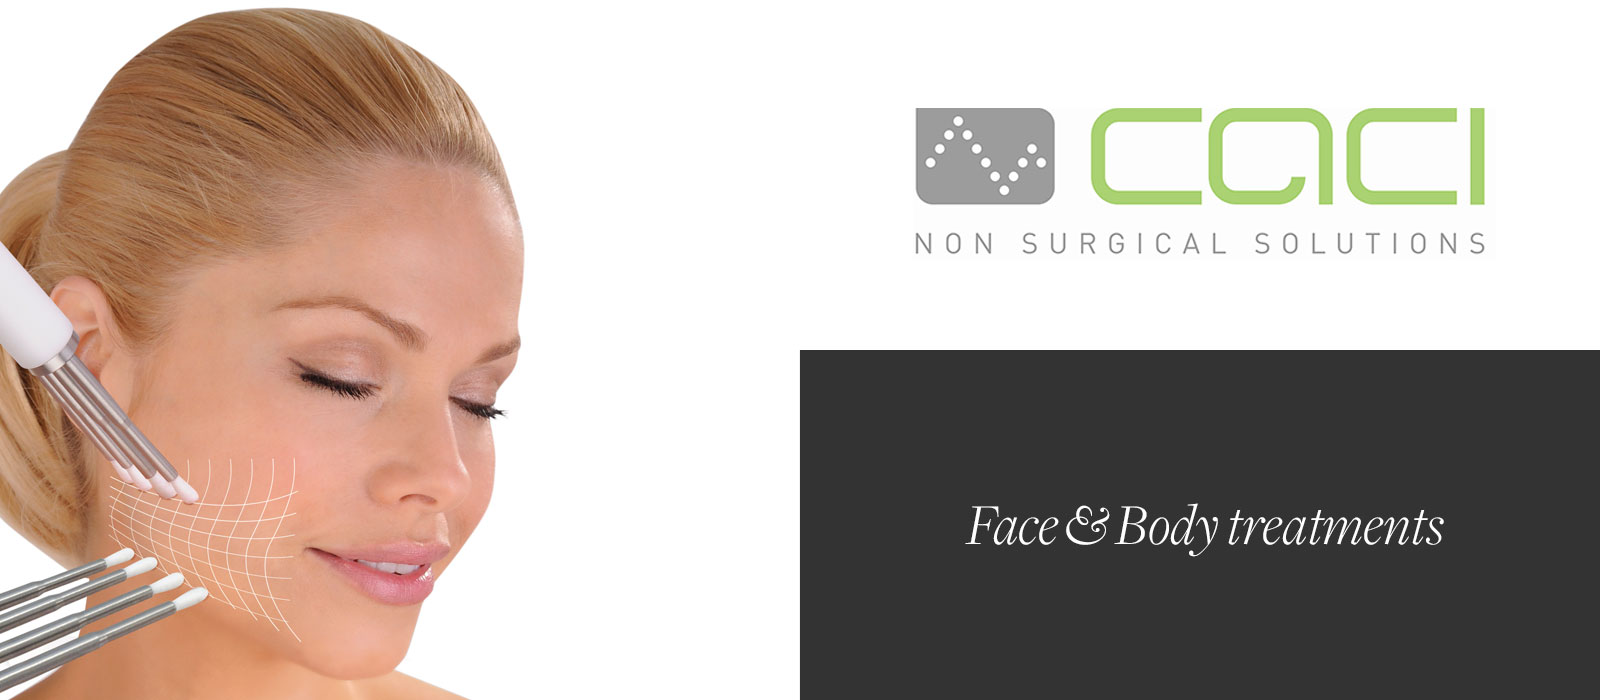 GLO Skin Specialists Facial Treatments